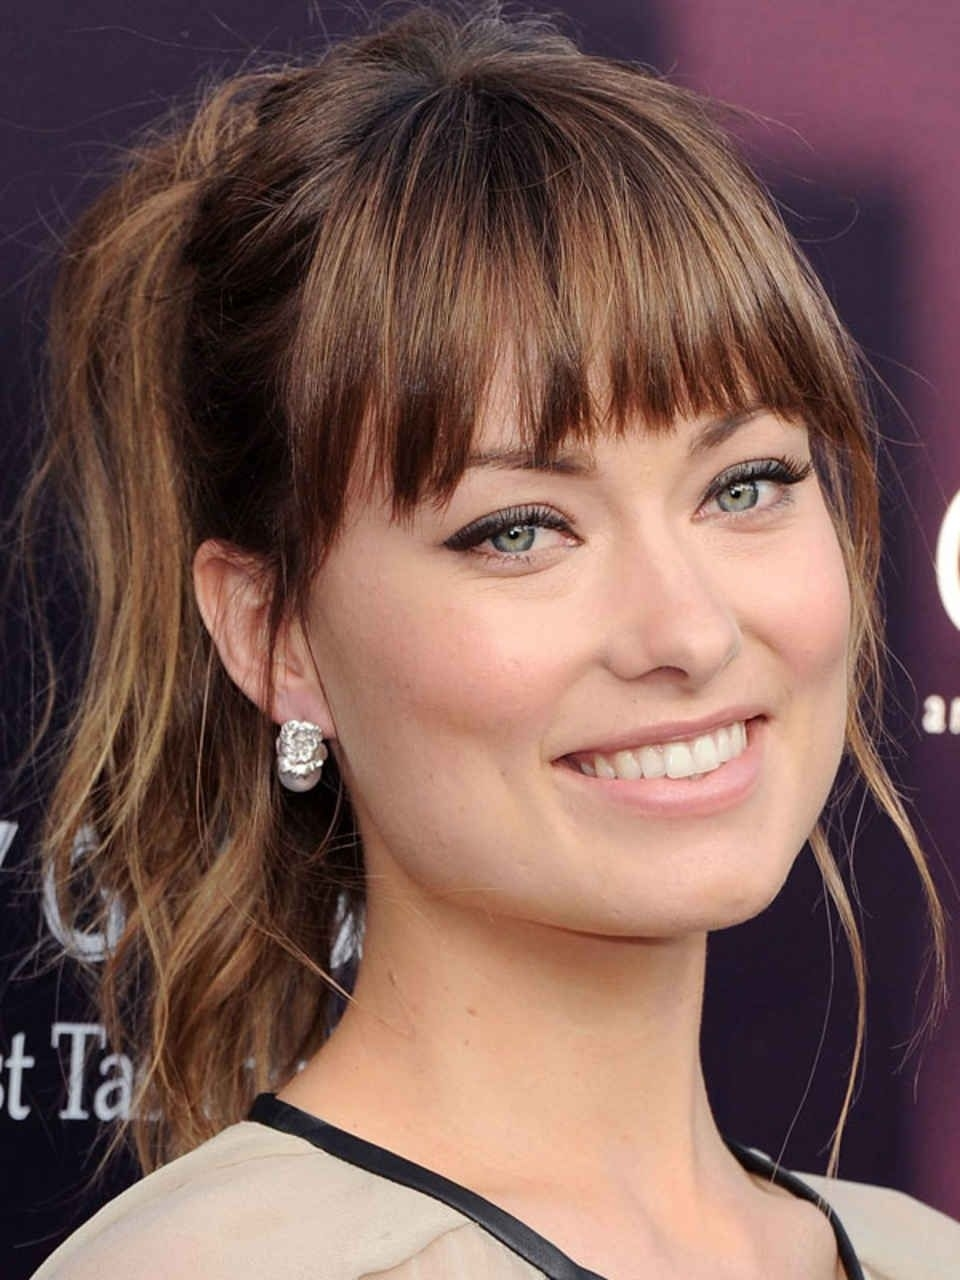 The Best (And Worst) Bangs For Square Face Shapes | Celebrity Beauty regarding Haircut For Square Face With Bangs